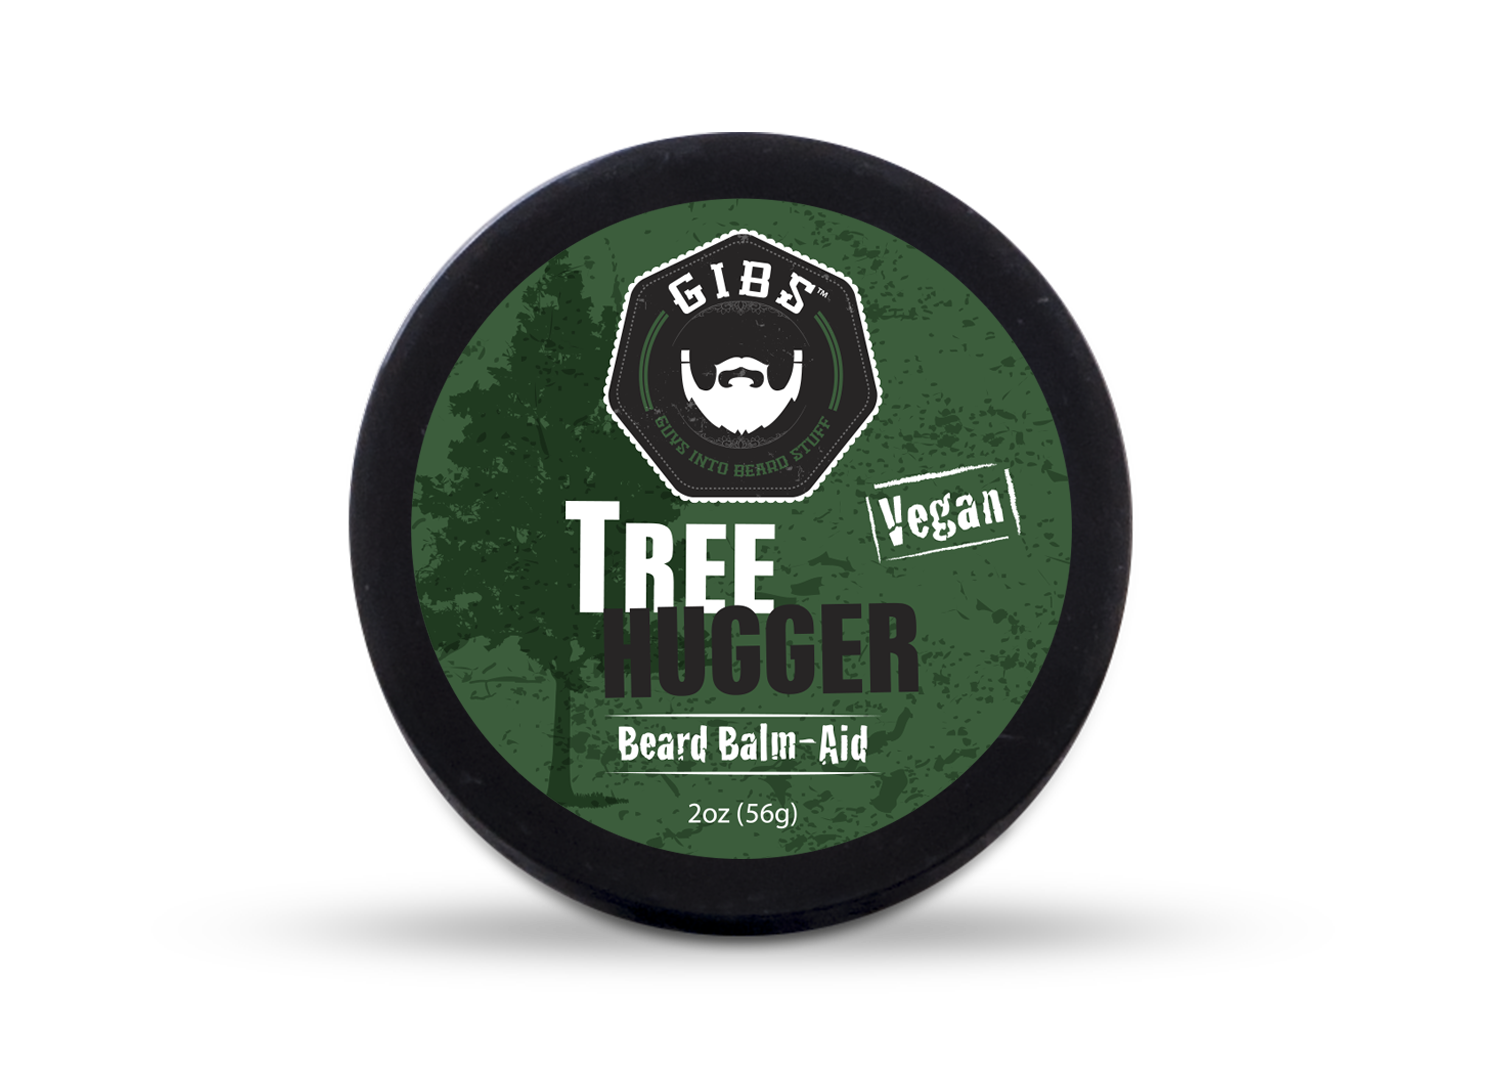 hug a tree and a beard gibs grooming drops tree hugger vegan beard balm. Black Bedroom Furniture Sets. Home Design Ideas